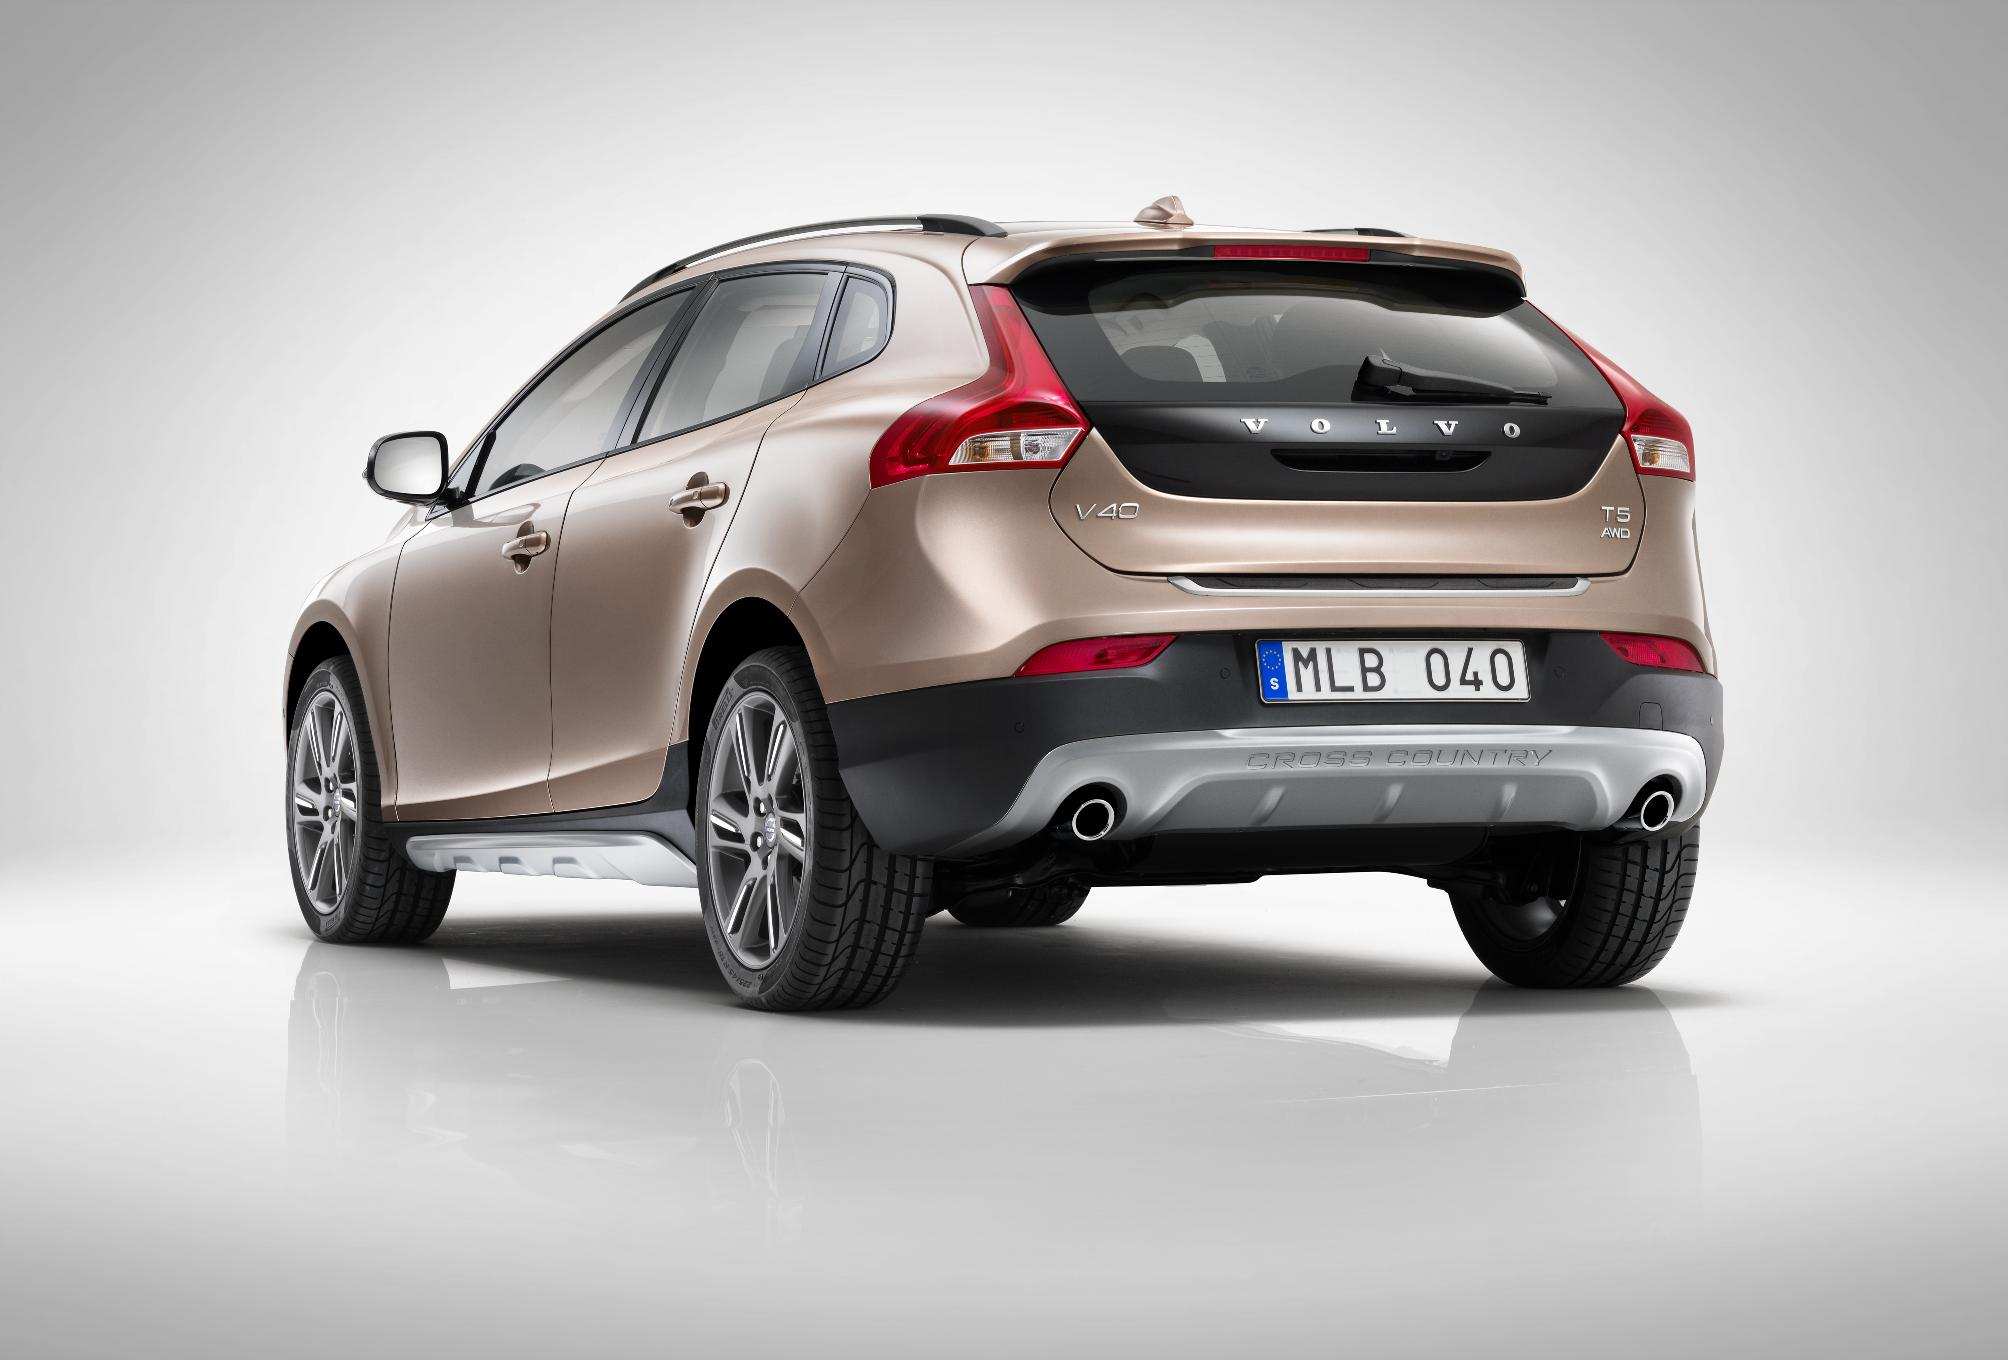 volvo v40 review 2013 wintonsworld. Black Bedroom Furniture Sets. Home Design Ideas